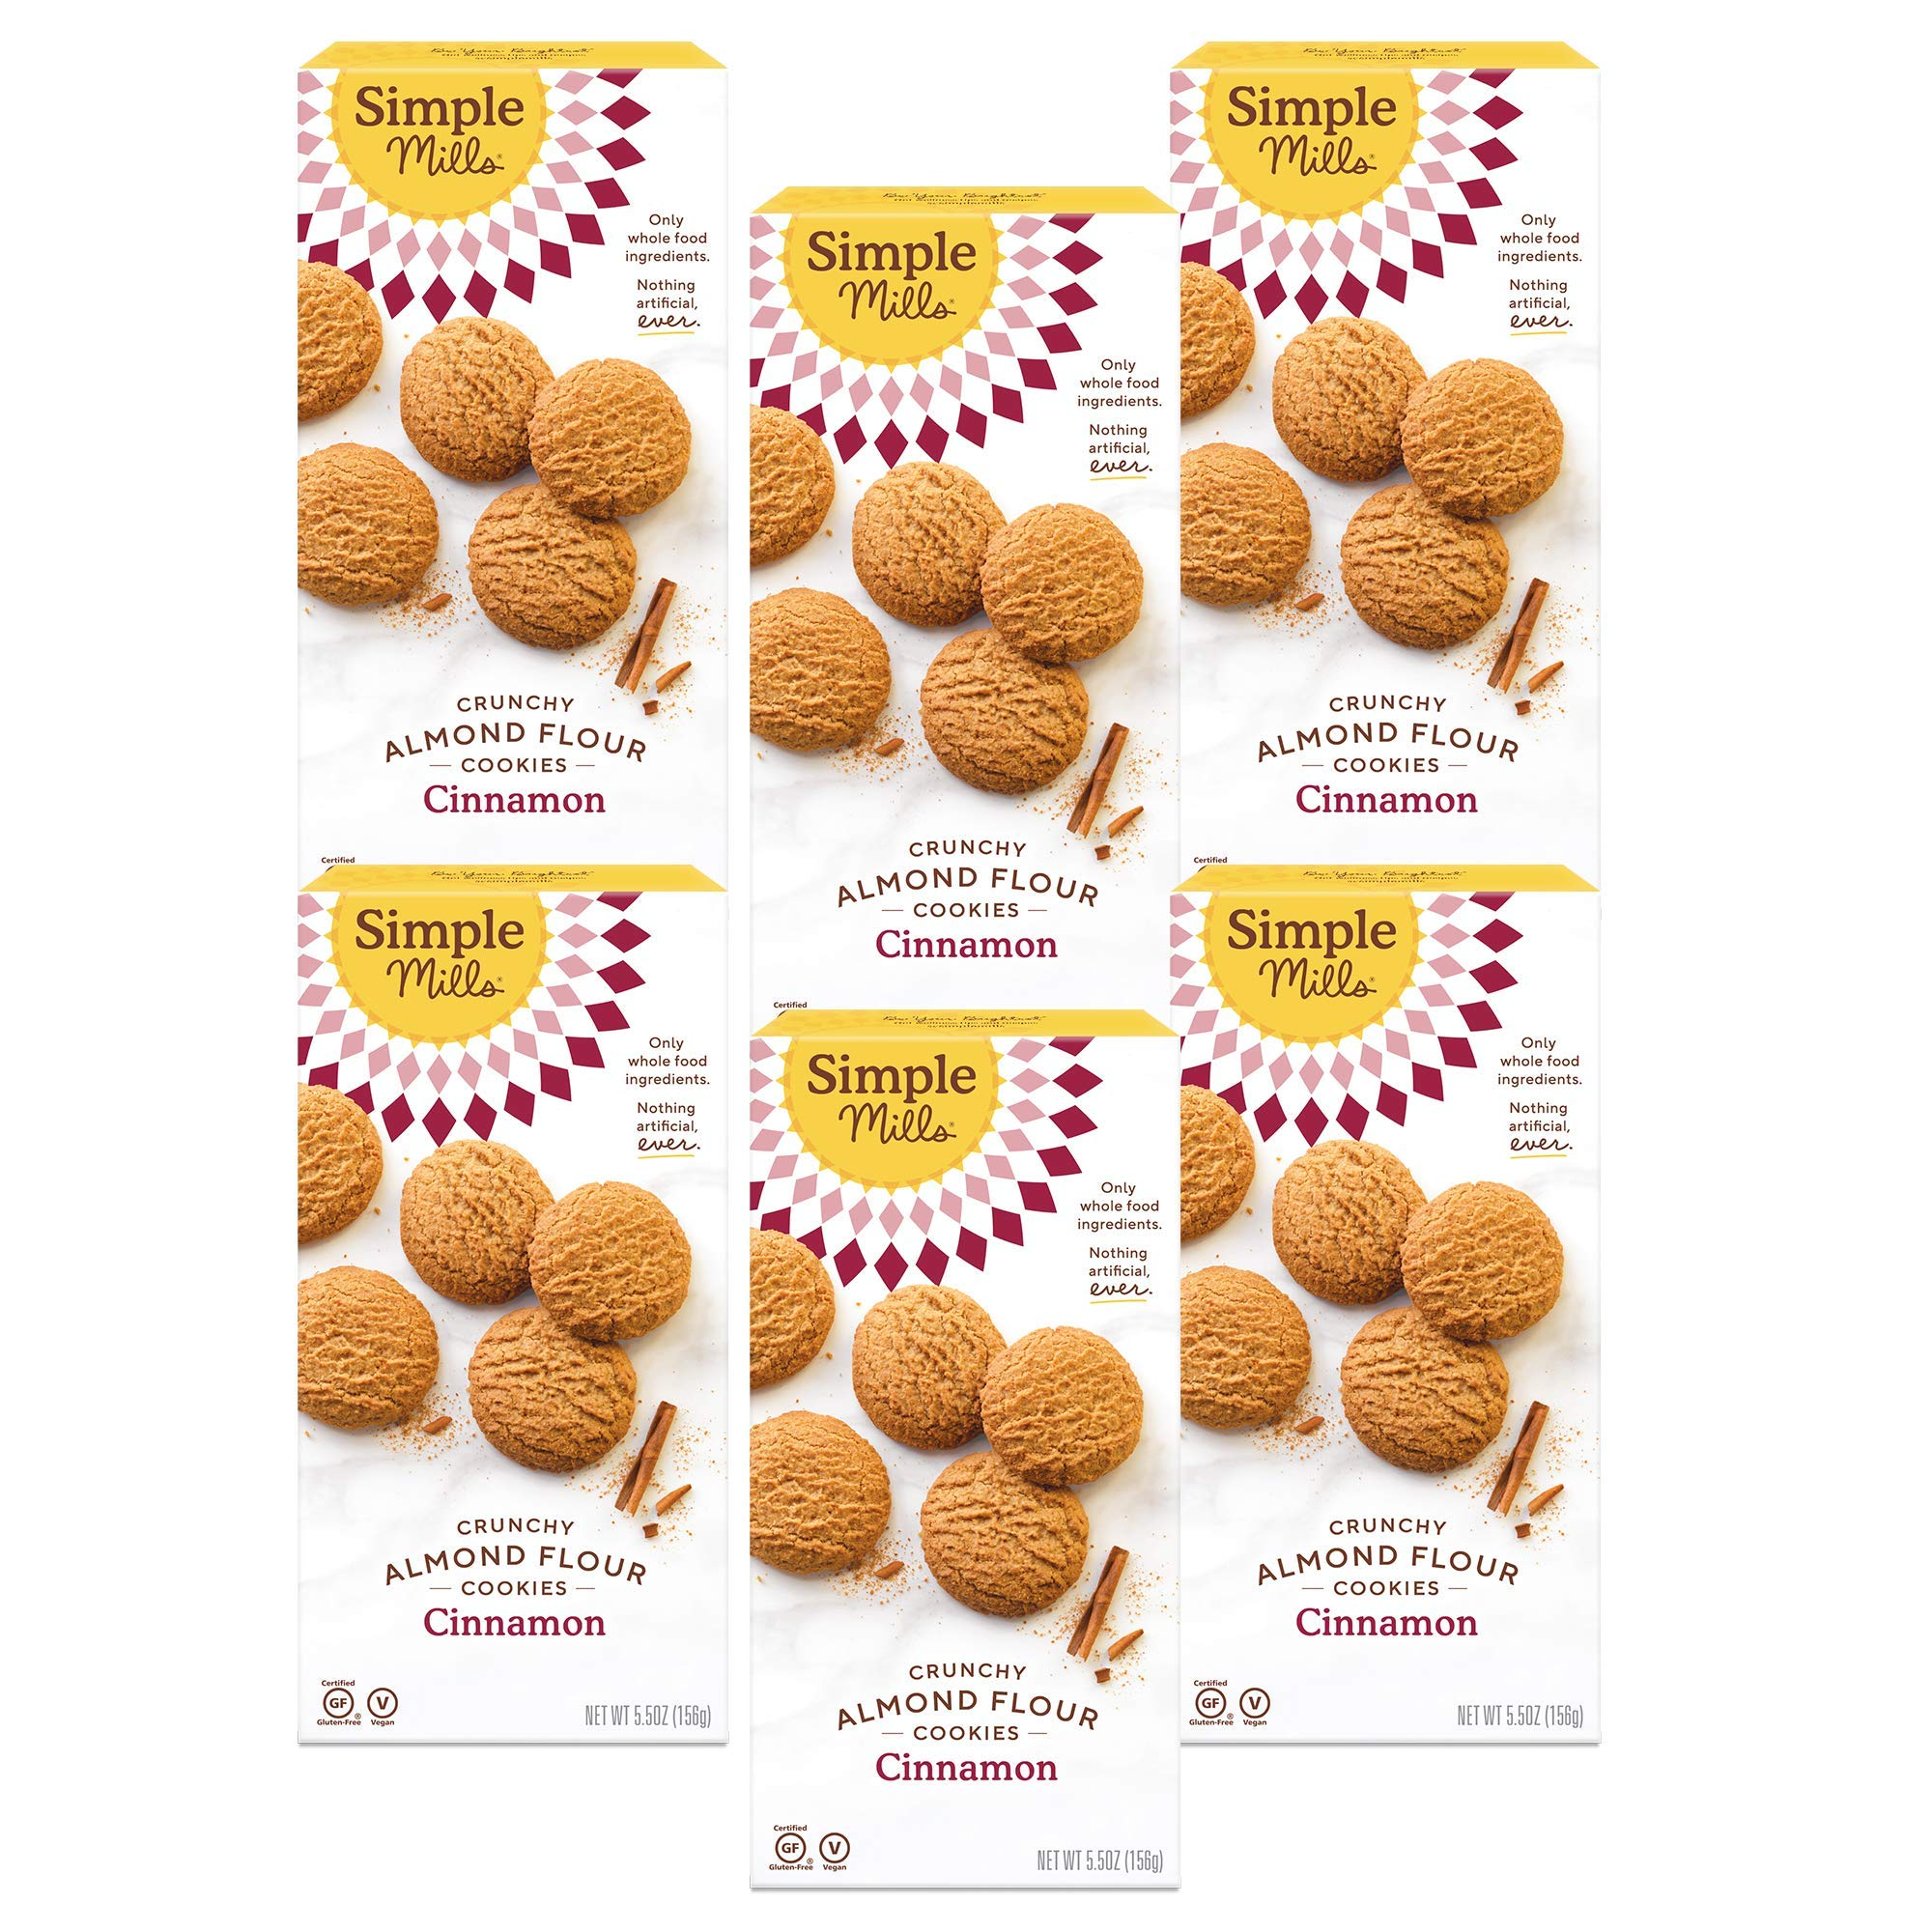 Simple Mills Almond Flour Cinnamon Cookies, Gluten Free and Delicious Crunchy Cookies, Organic Coconut Oil, Better for you Snacks, Made with whole foods, 6 Count, (Packaging May Vary)